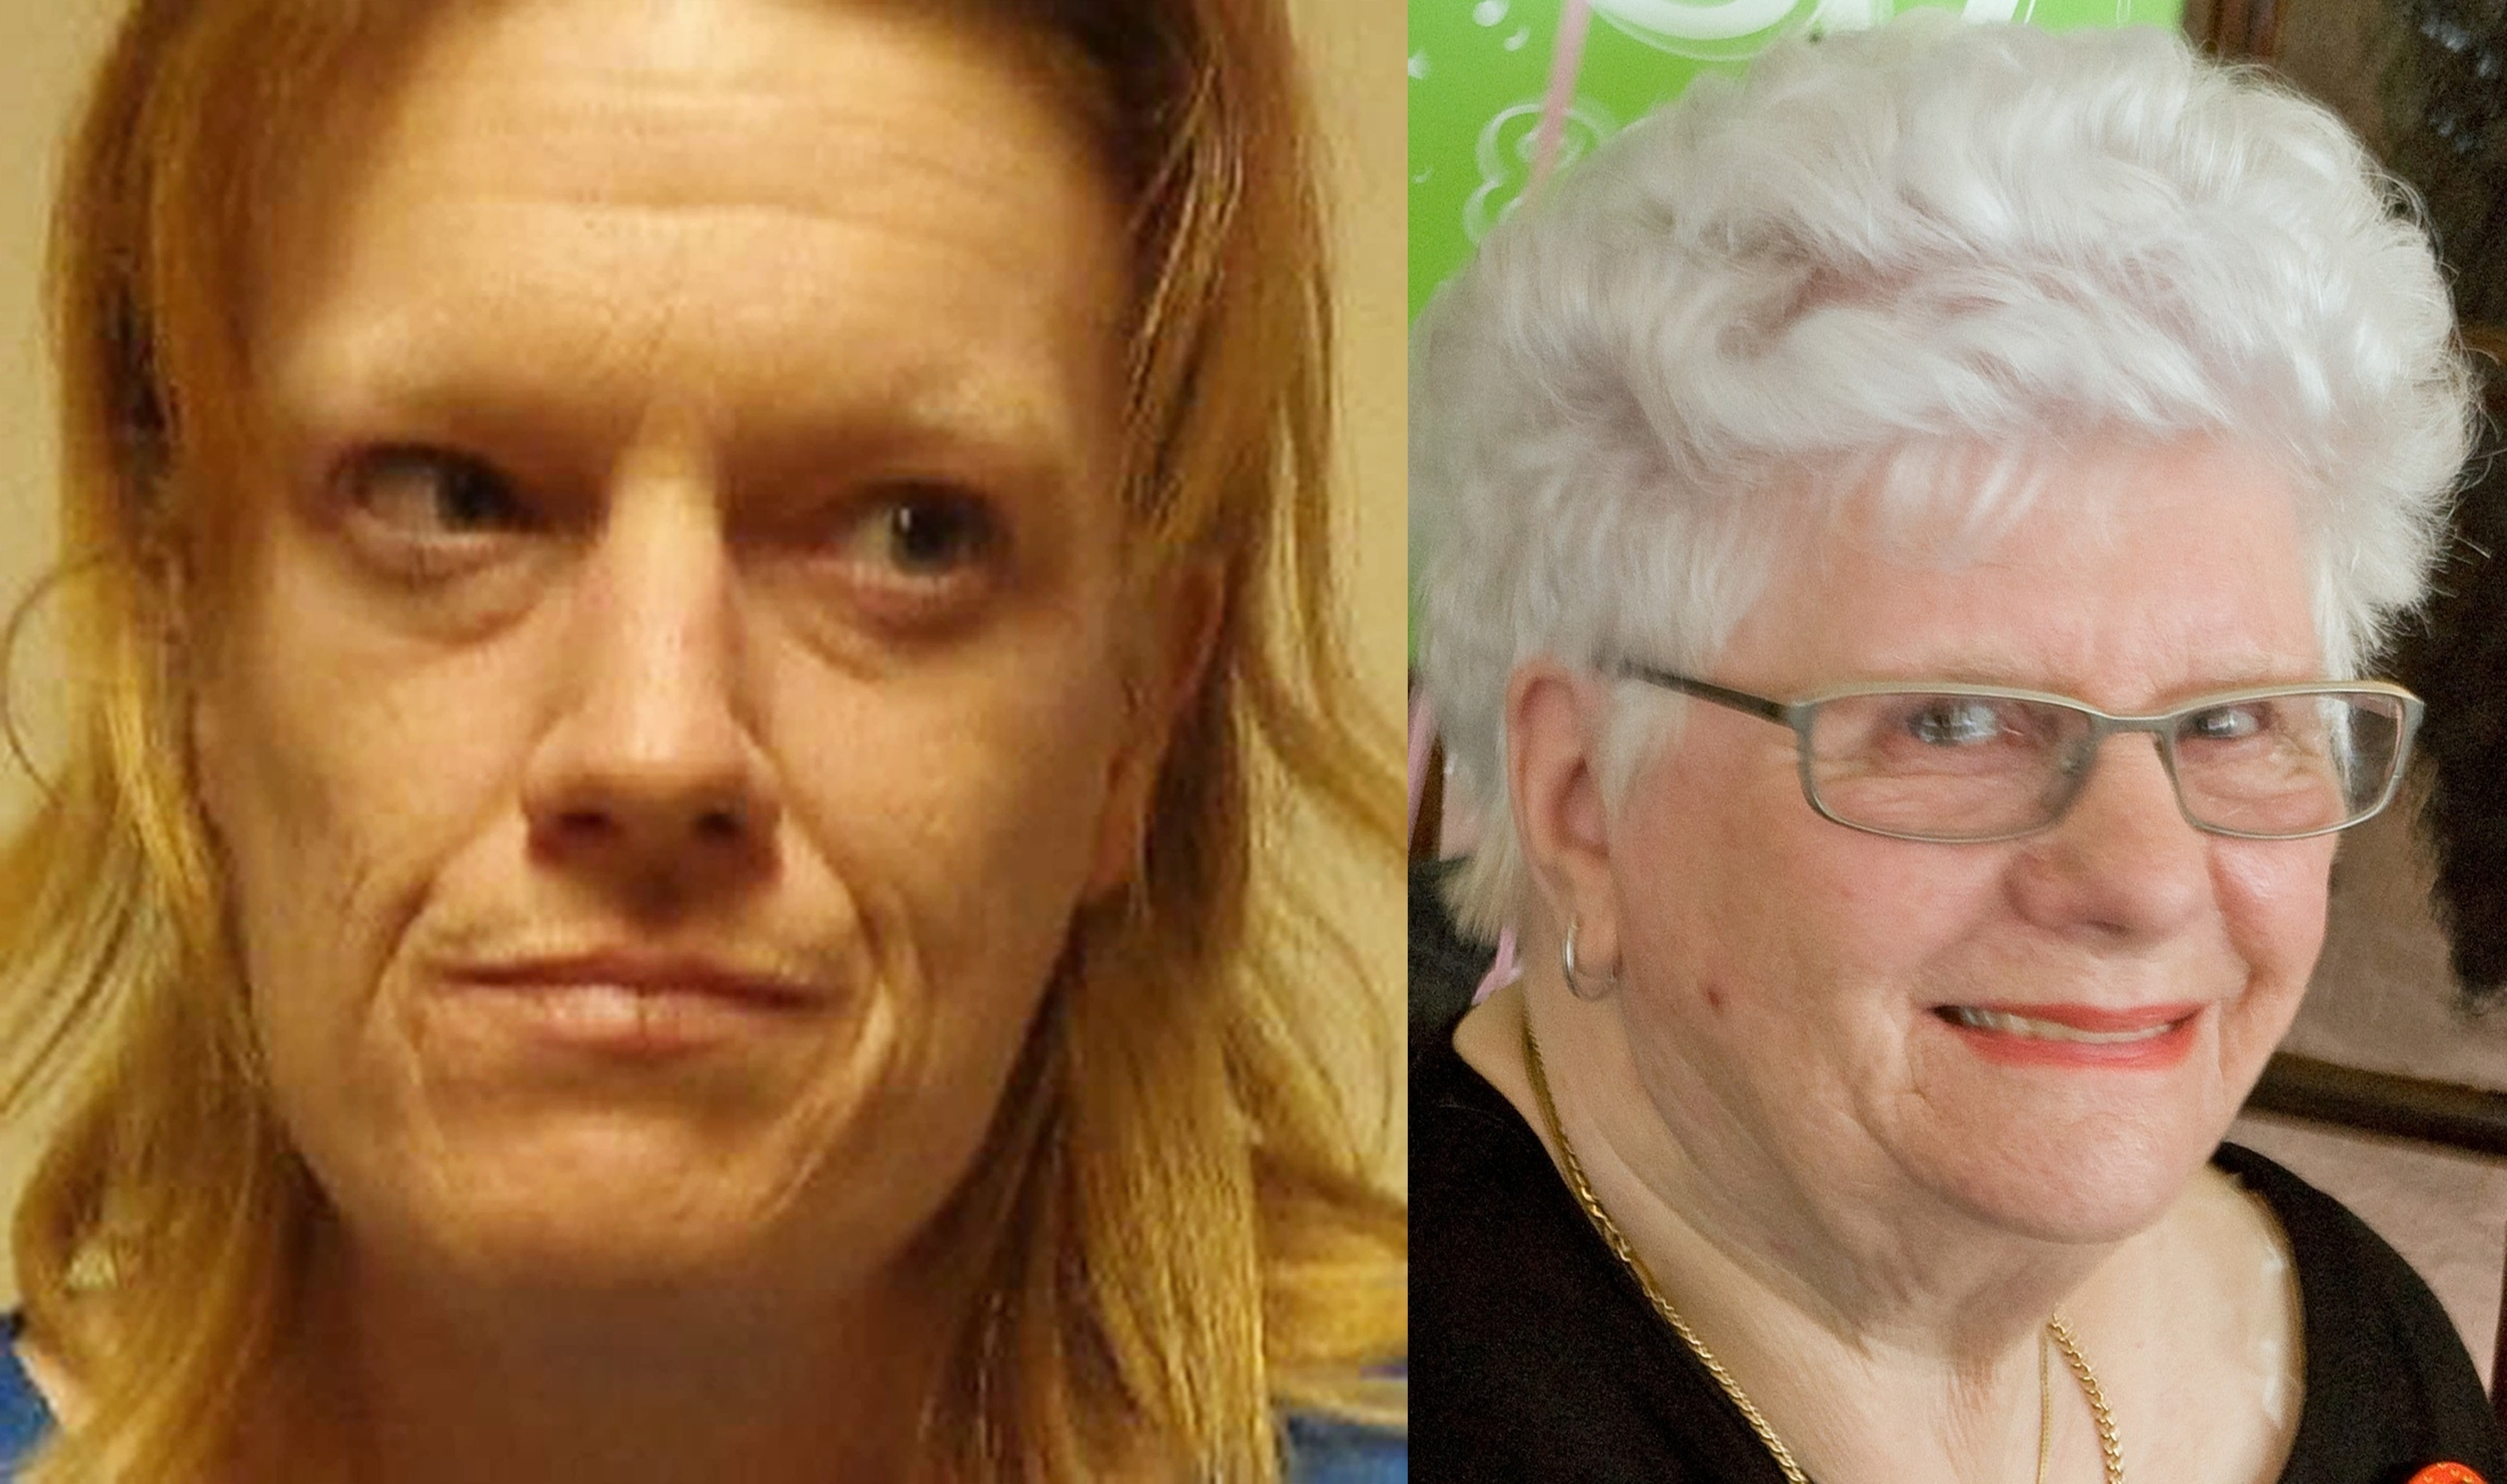 Sandra Weir was previously found guilty of murdering her elderly neighbour Mary Logie.